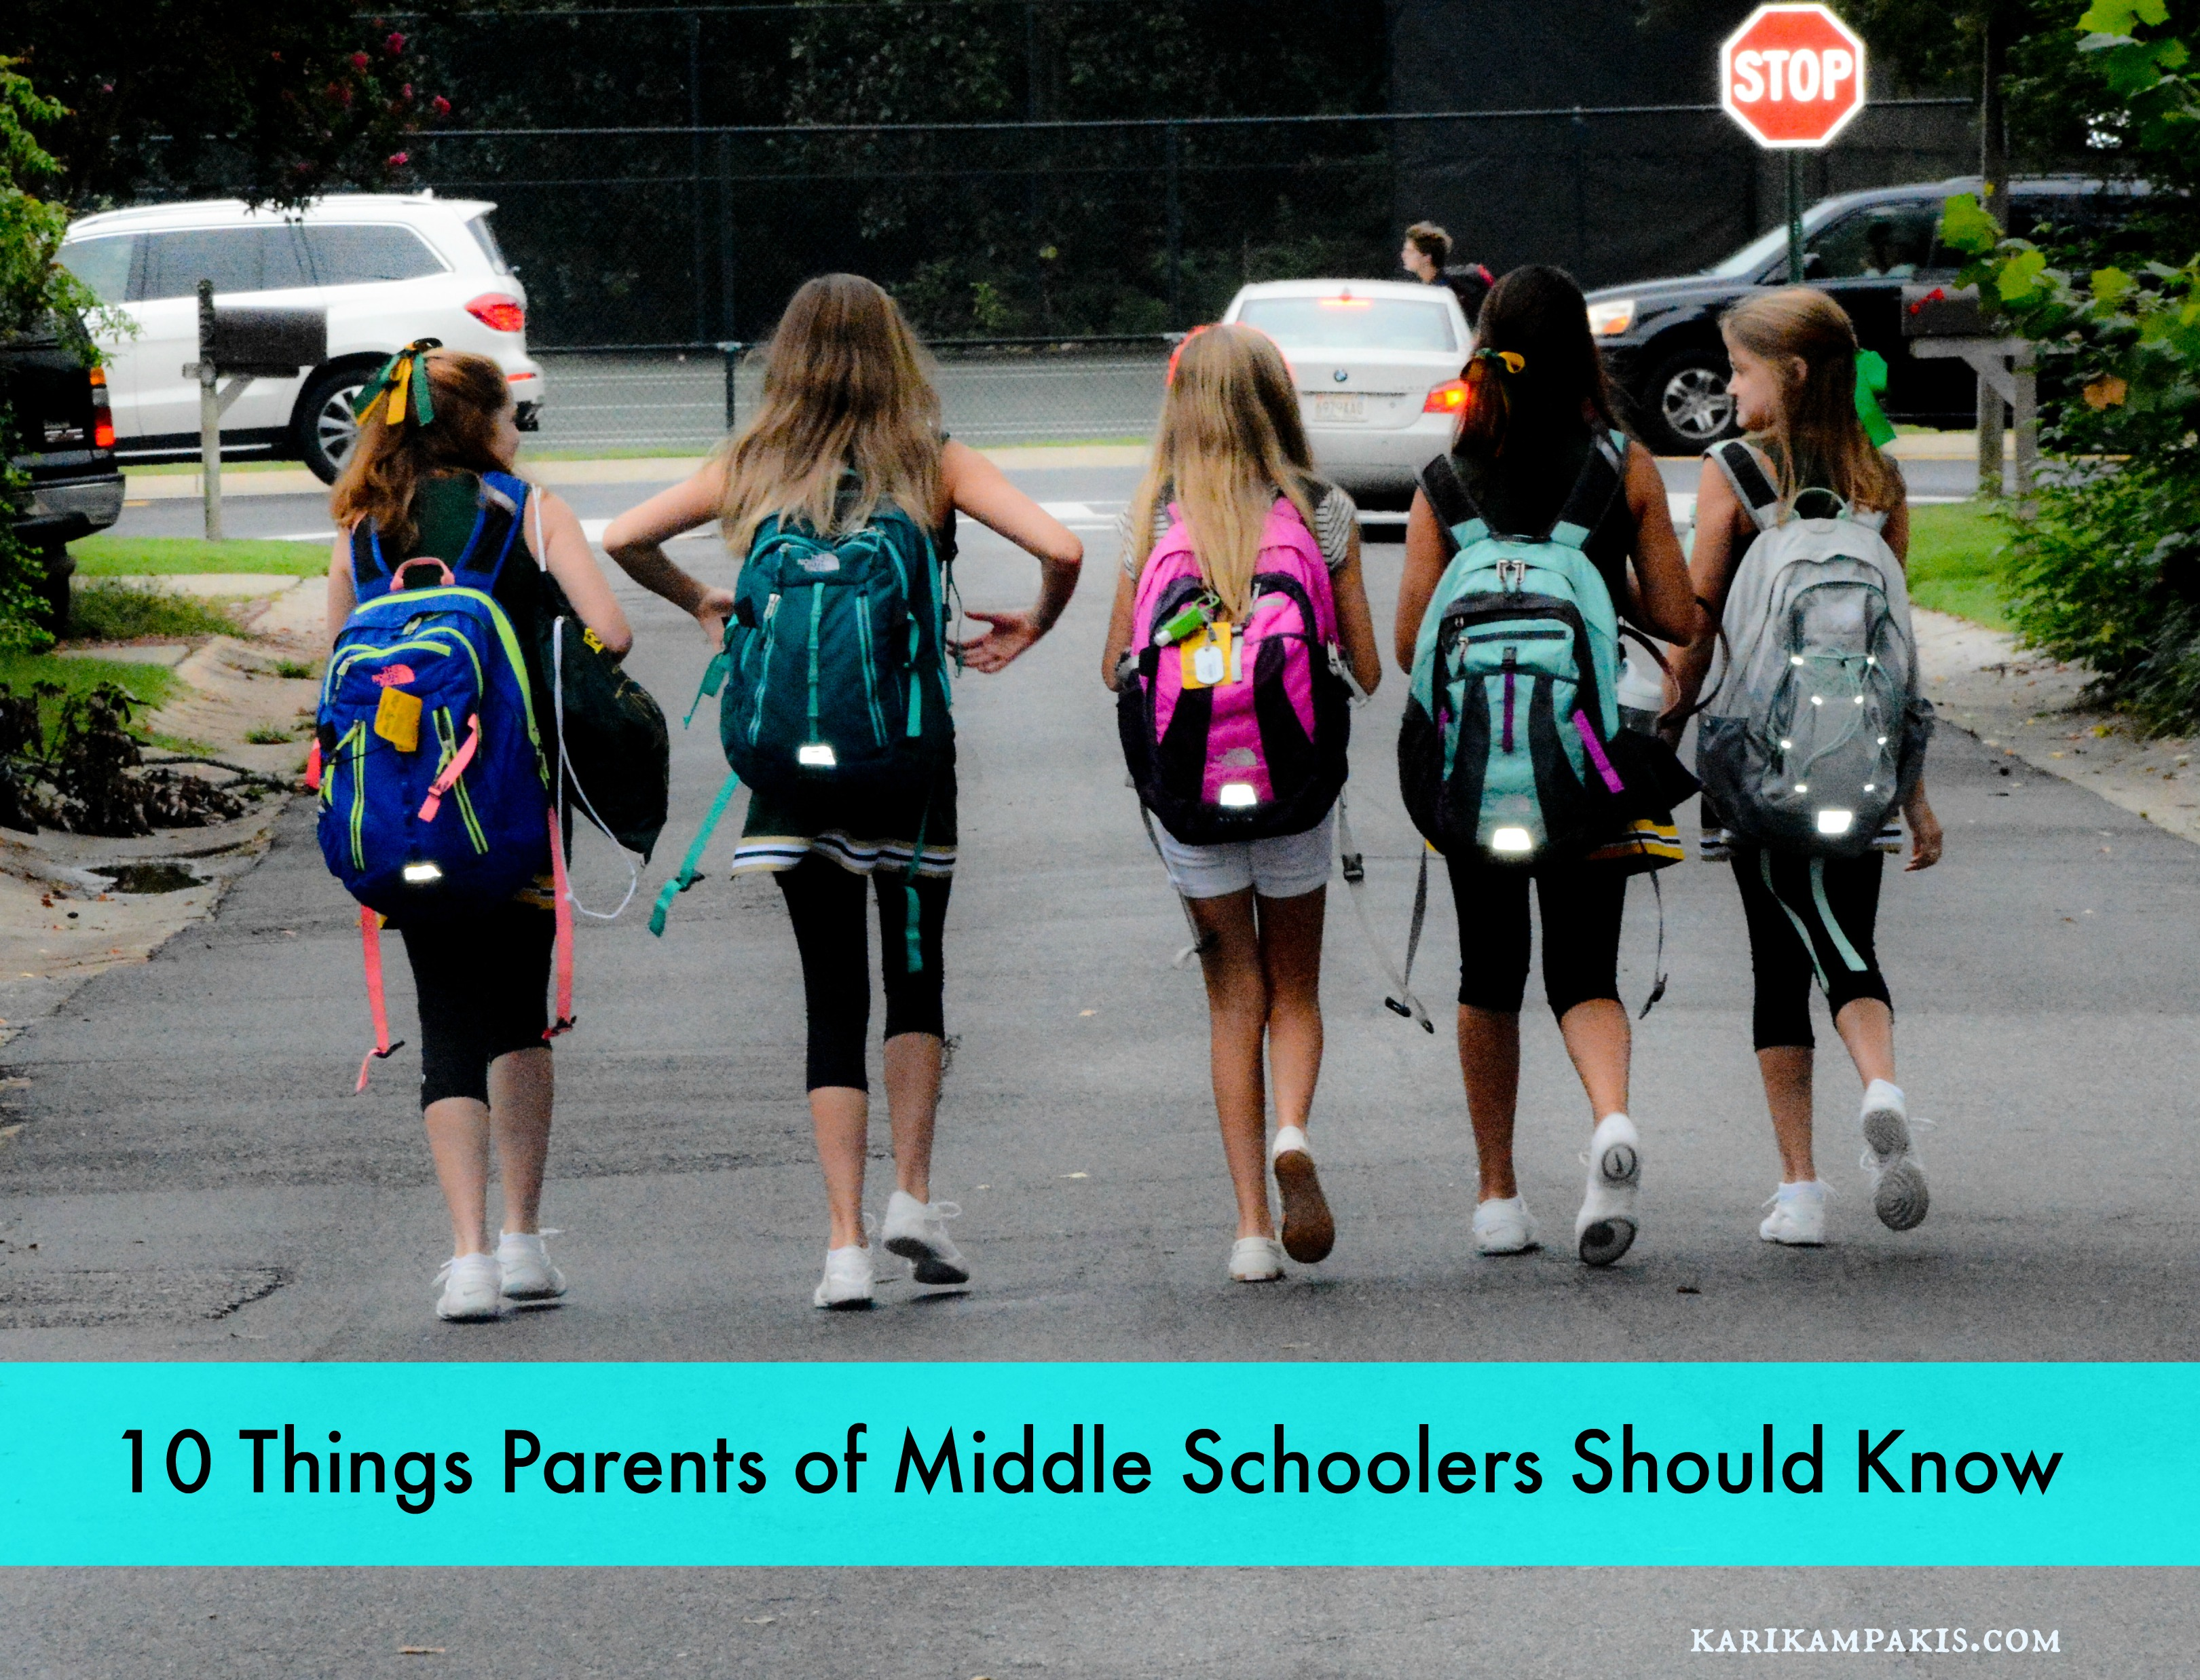 10 Things Parents of Middle Schoolers Should Know